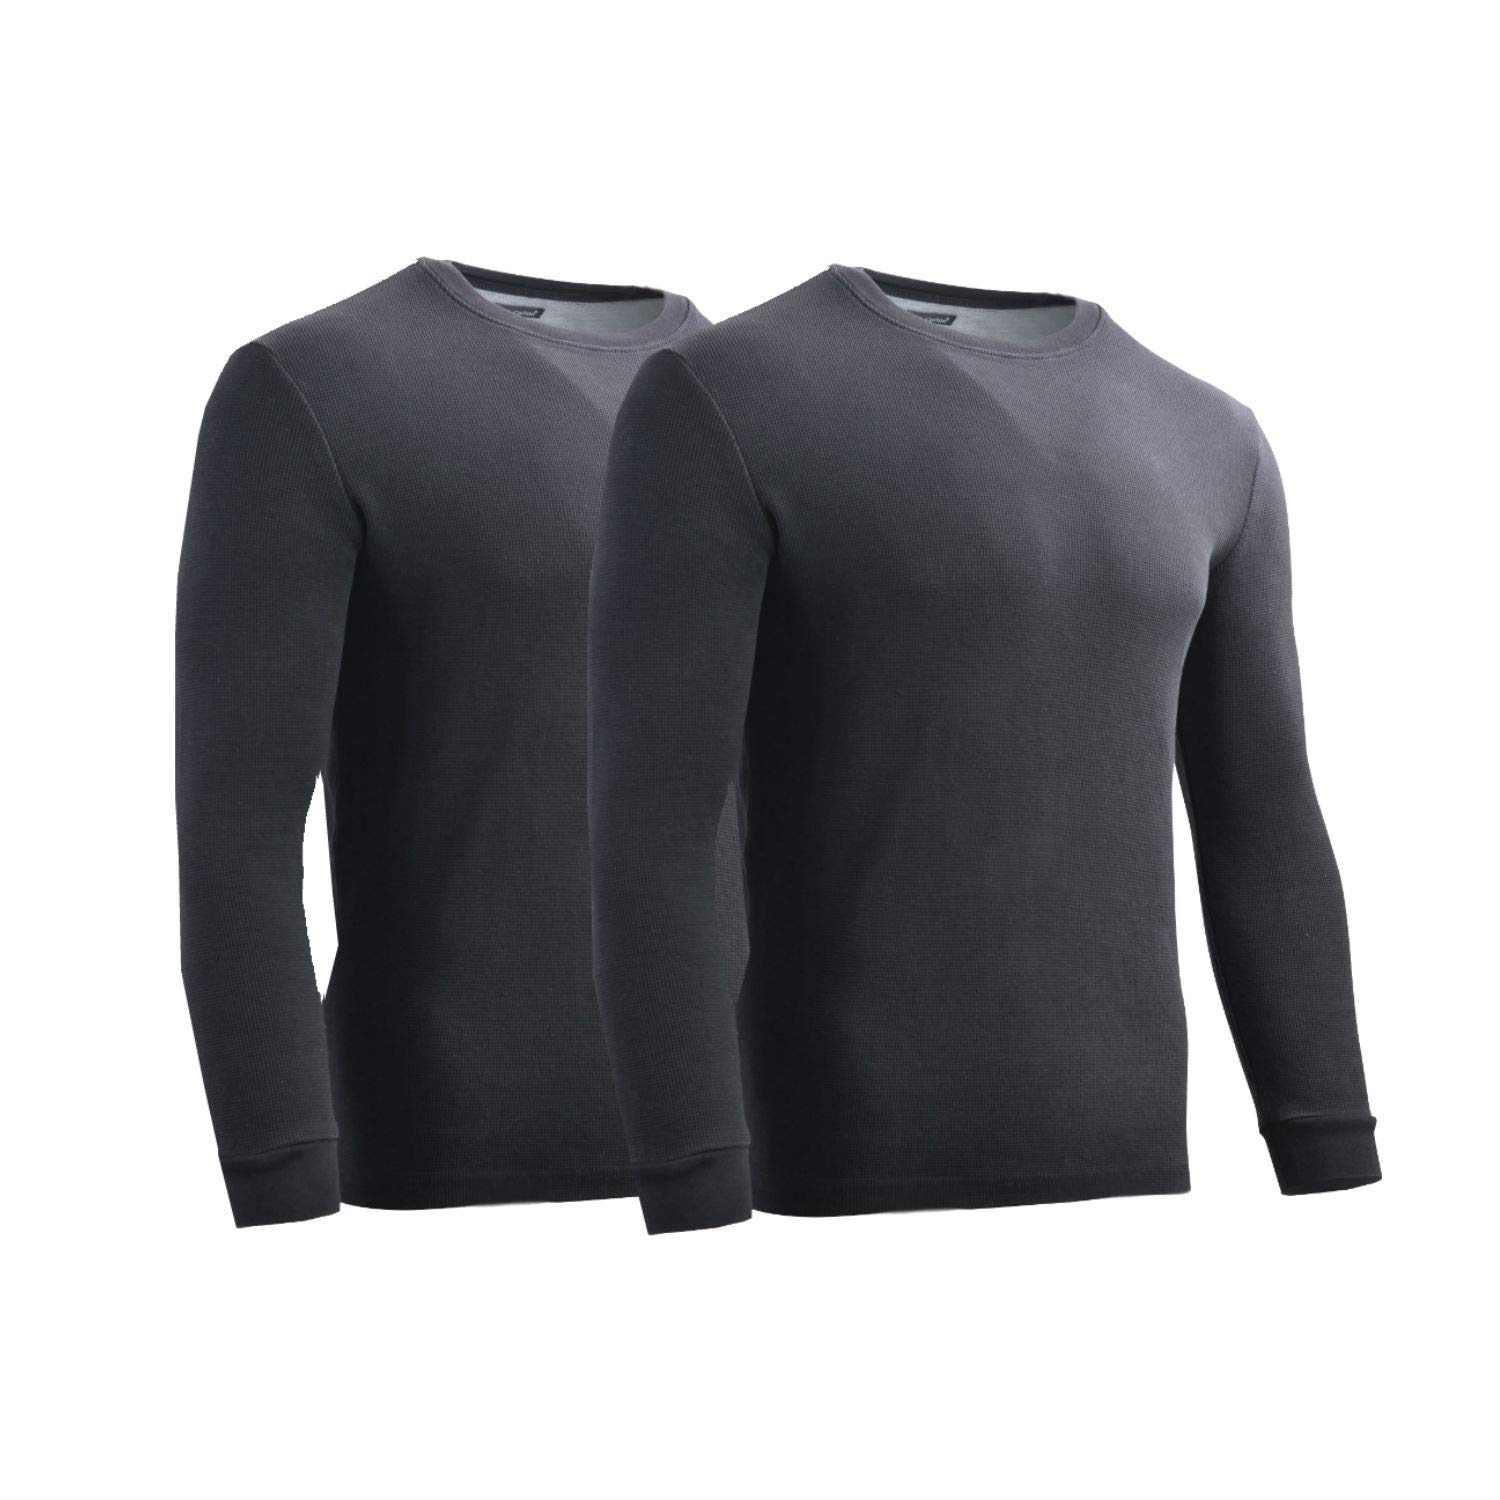 Rich Cotton Men's Tick Midweight Waffle Thermal Shirt Long Sleeve Top Underwear 1 2 3 or 6 Pack